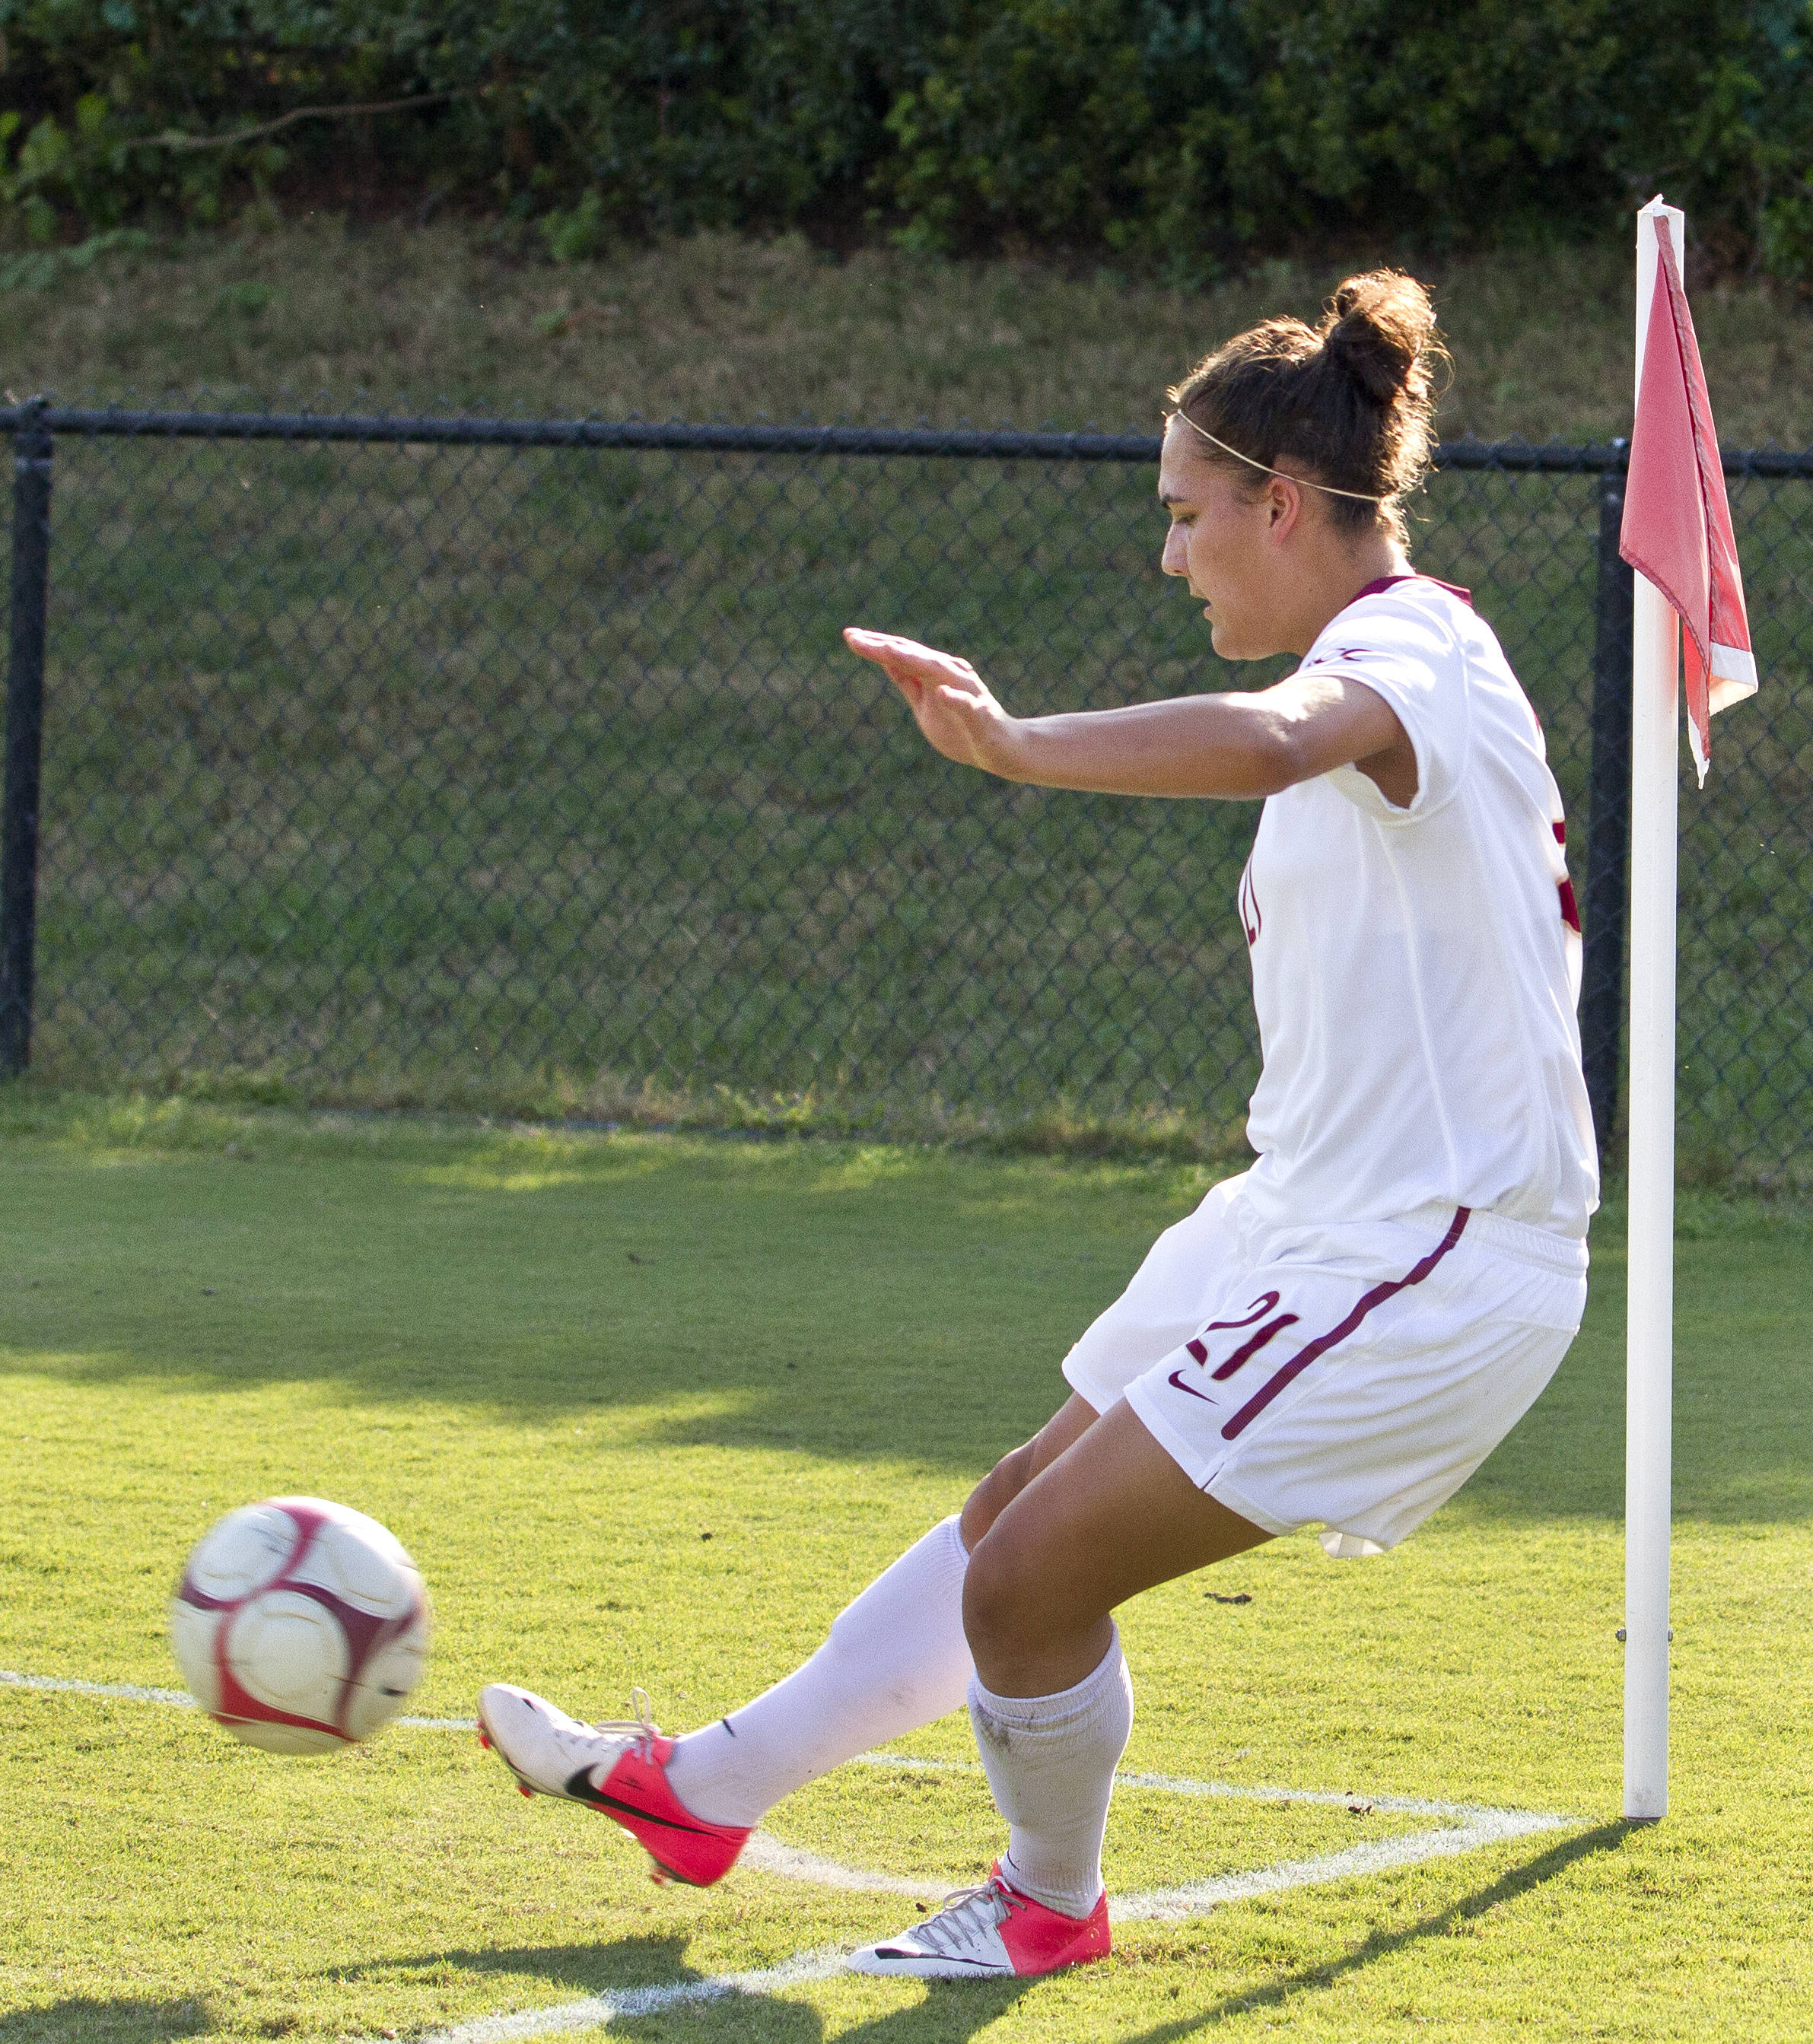 Marta Bakowska-Mathews corner kicks led to two assists, FSU vs Jackson State, 9/21/12 (Photo by Steve Musco)